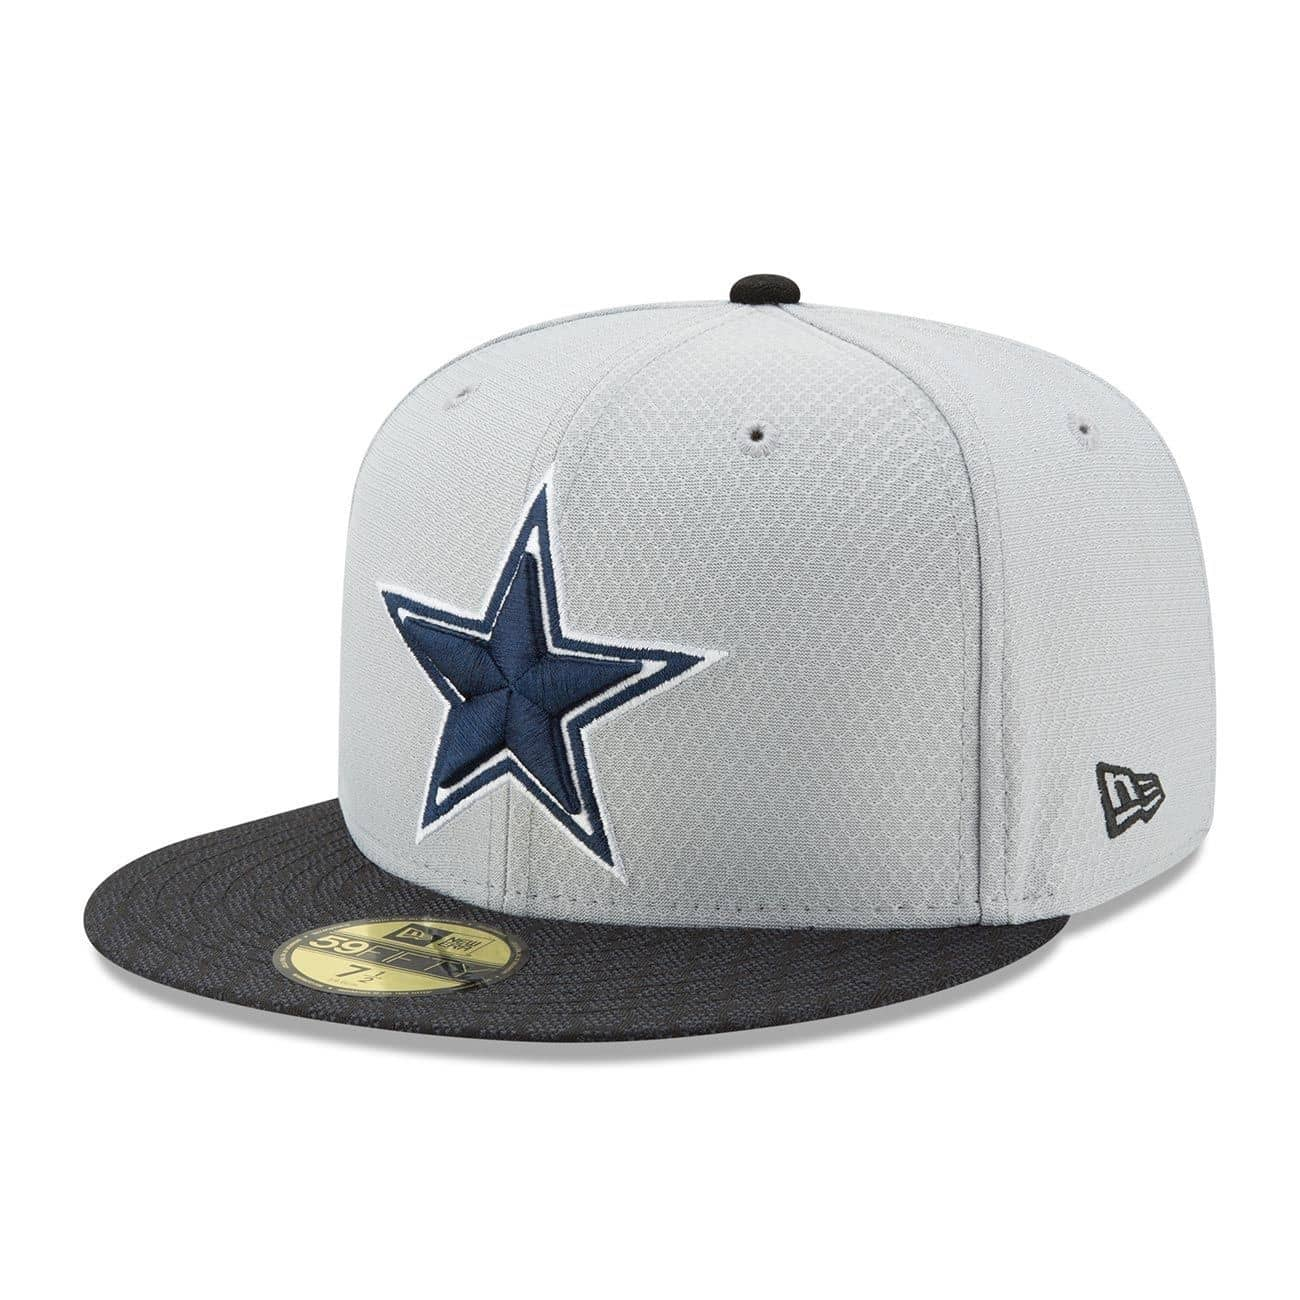 47bf14d28 New Era Dallas Cowboys 2017 Sideline GRAPHITE NFL 59FIFTY Fitted Cap ...